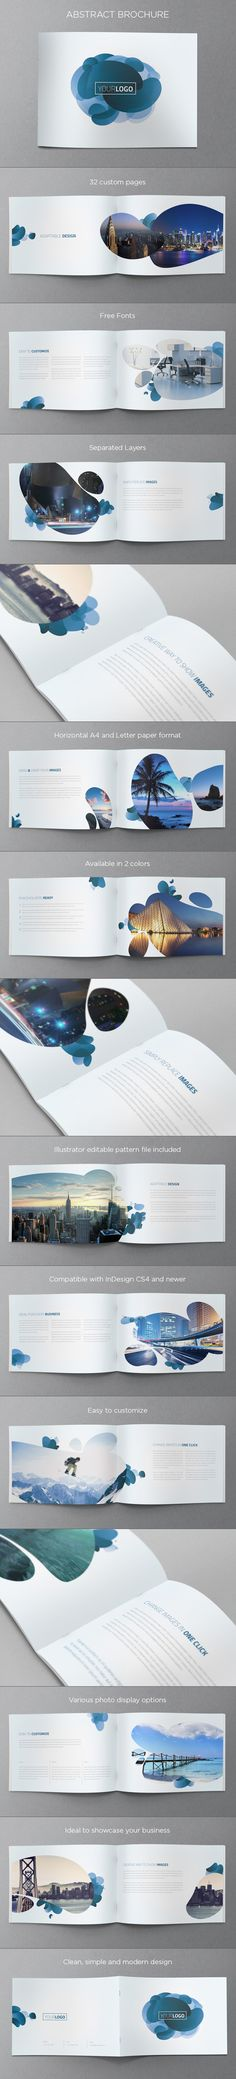 Abstract Modern Brochure